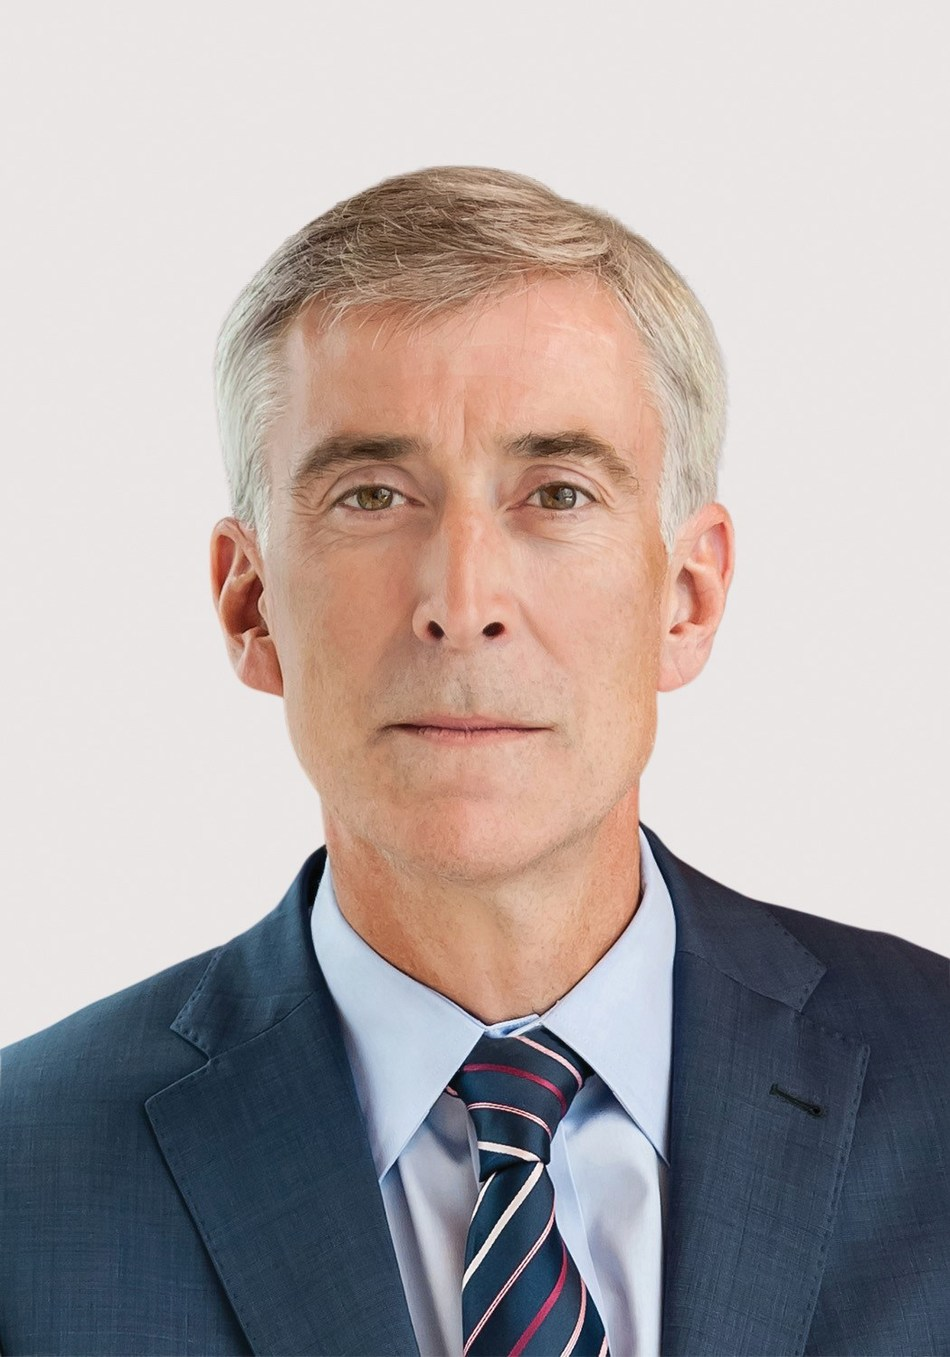 The agency also welcomes David Agnew, president of Seneca College, as its interim chair (CNW Group/Education Quality and Accountability Office)